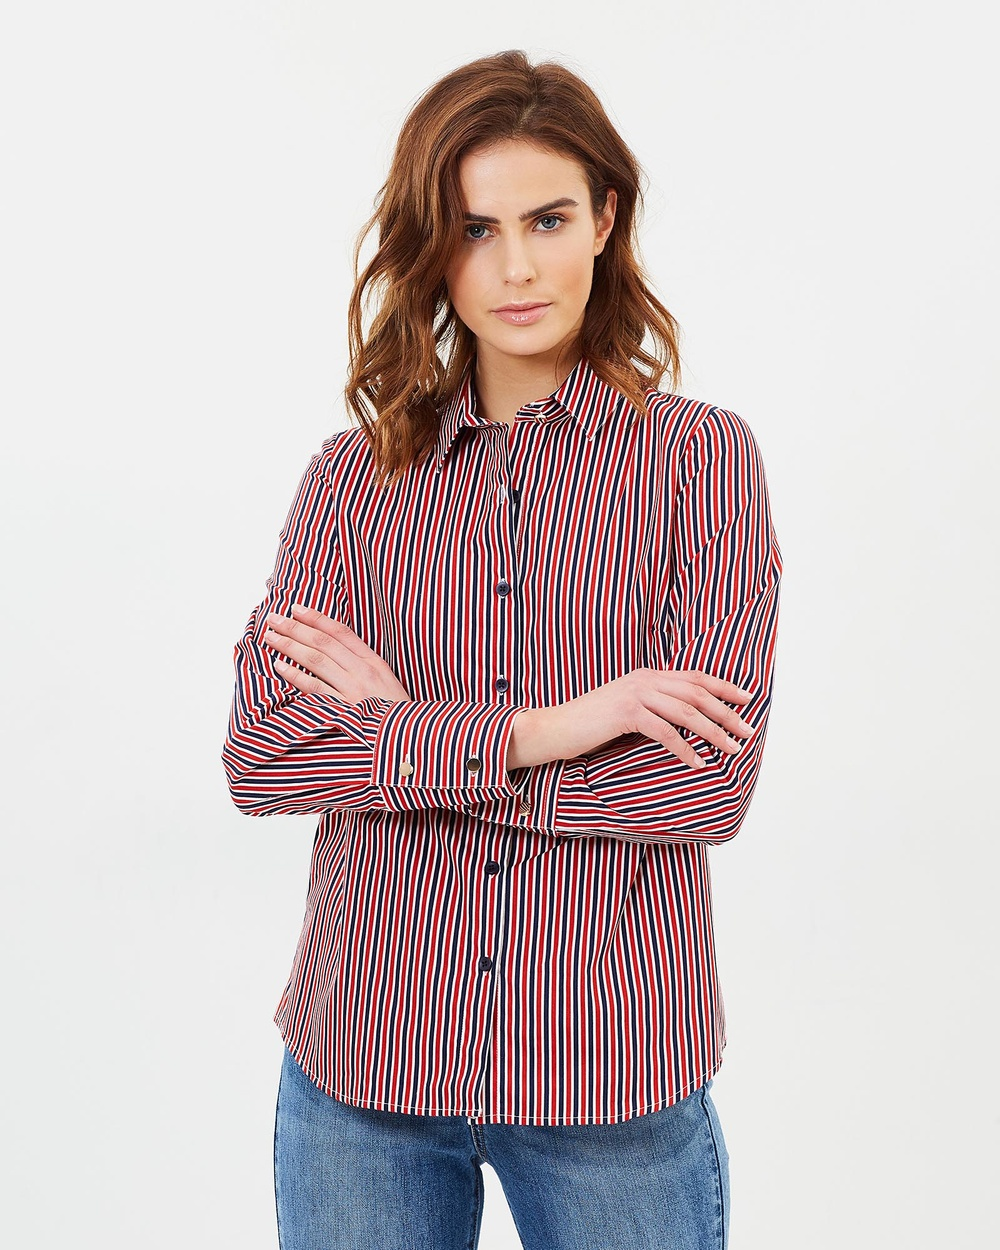 Elvie & Leo The Tailored Shirt Tops Blue & Red Stripe The Tailored Shirt